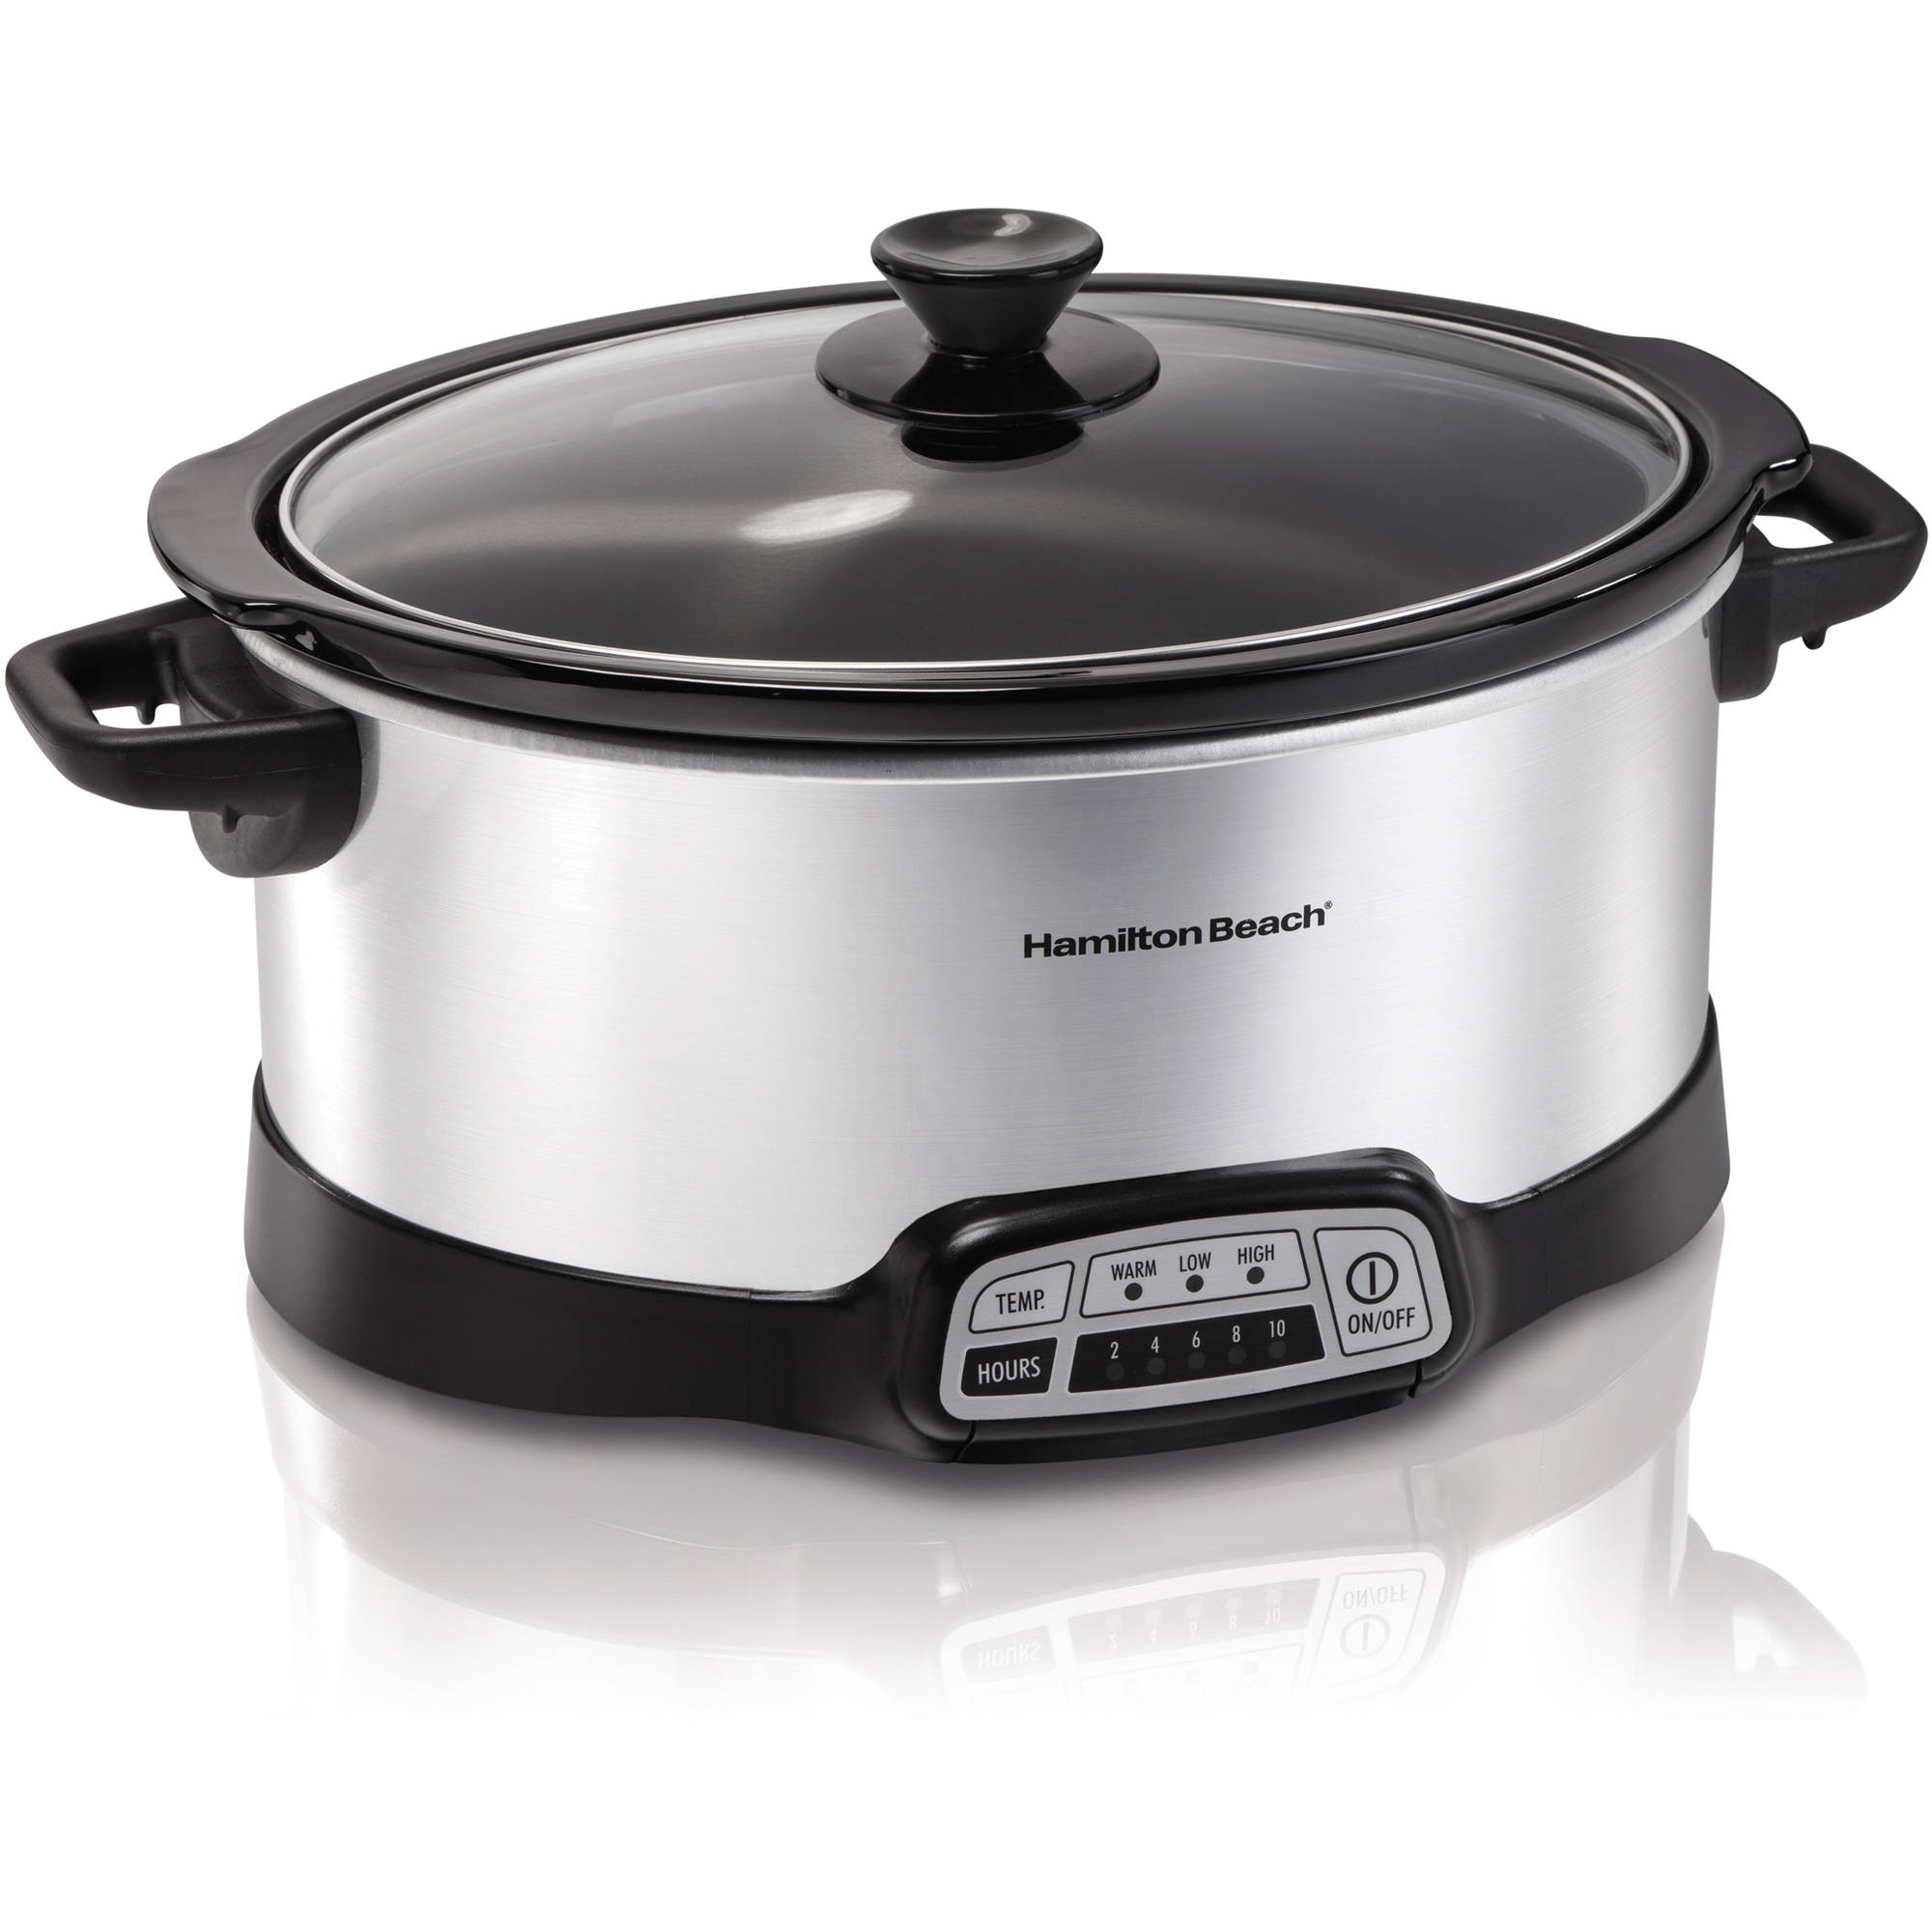 Hamilton Beach Programmable 7-Quart Slow Cooker